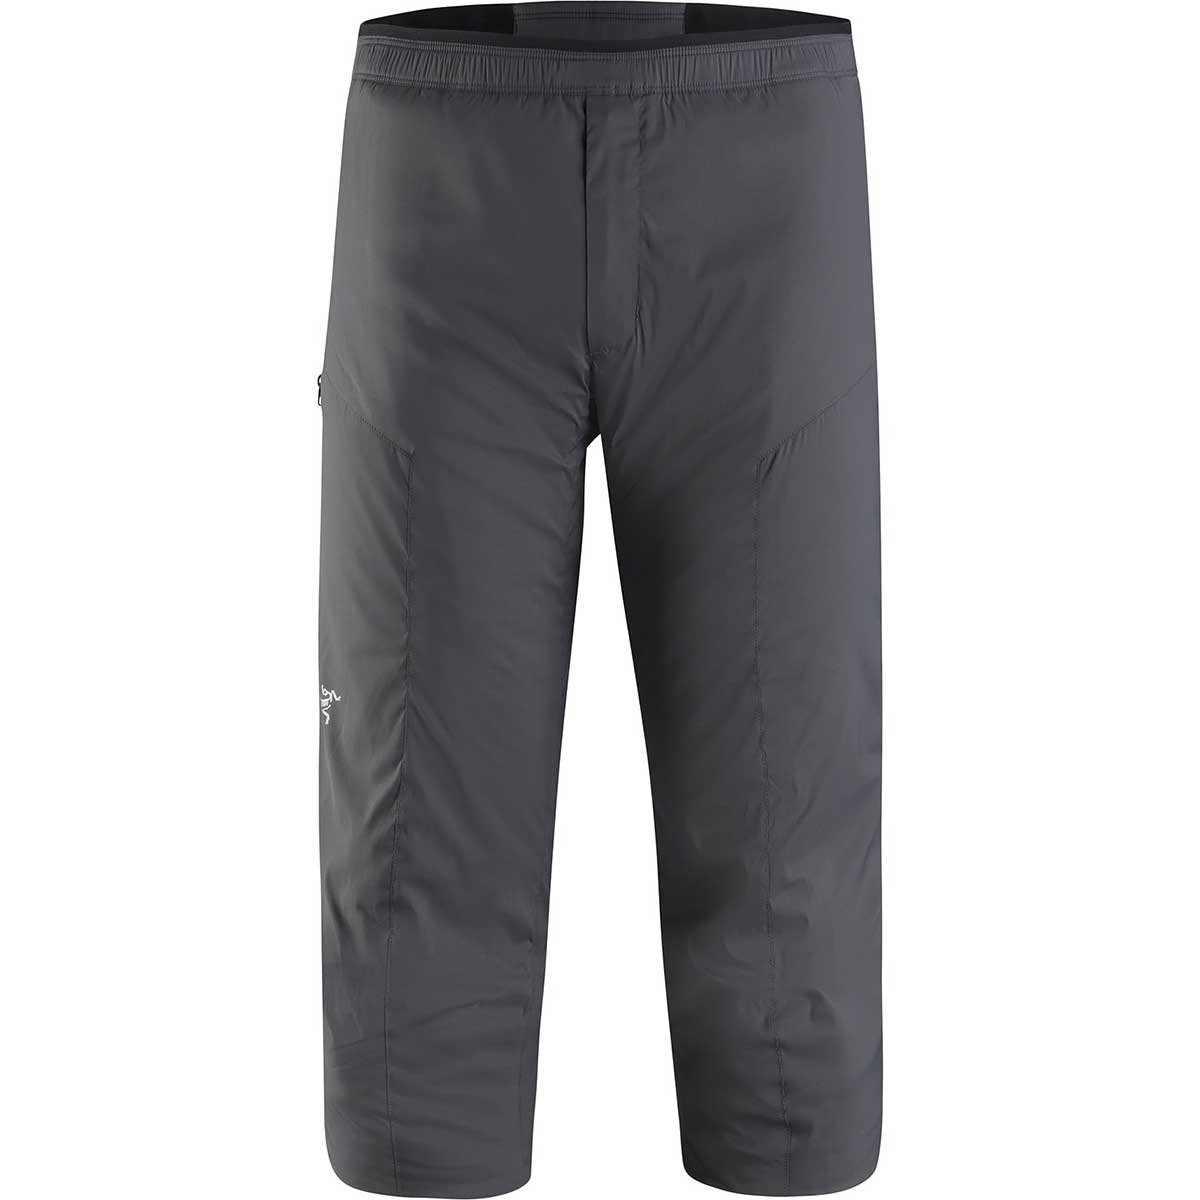 Arcteryx men's Axino Knicker in Magnet front view